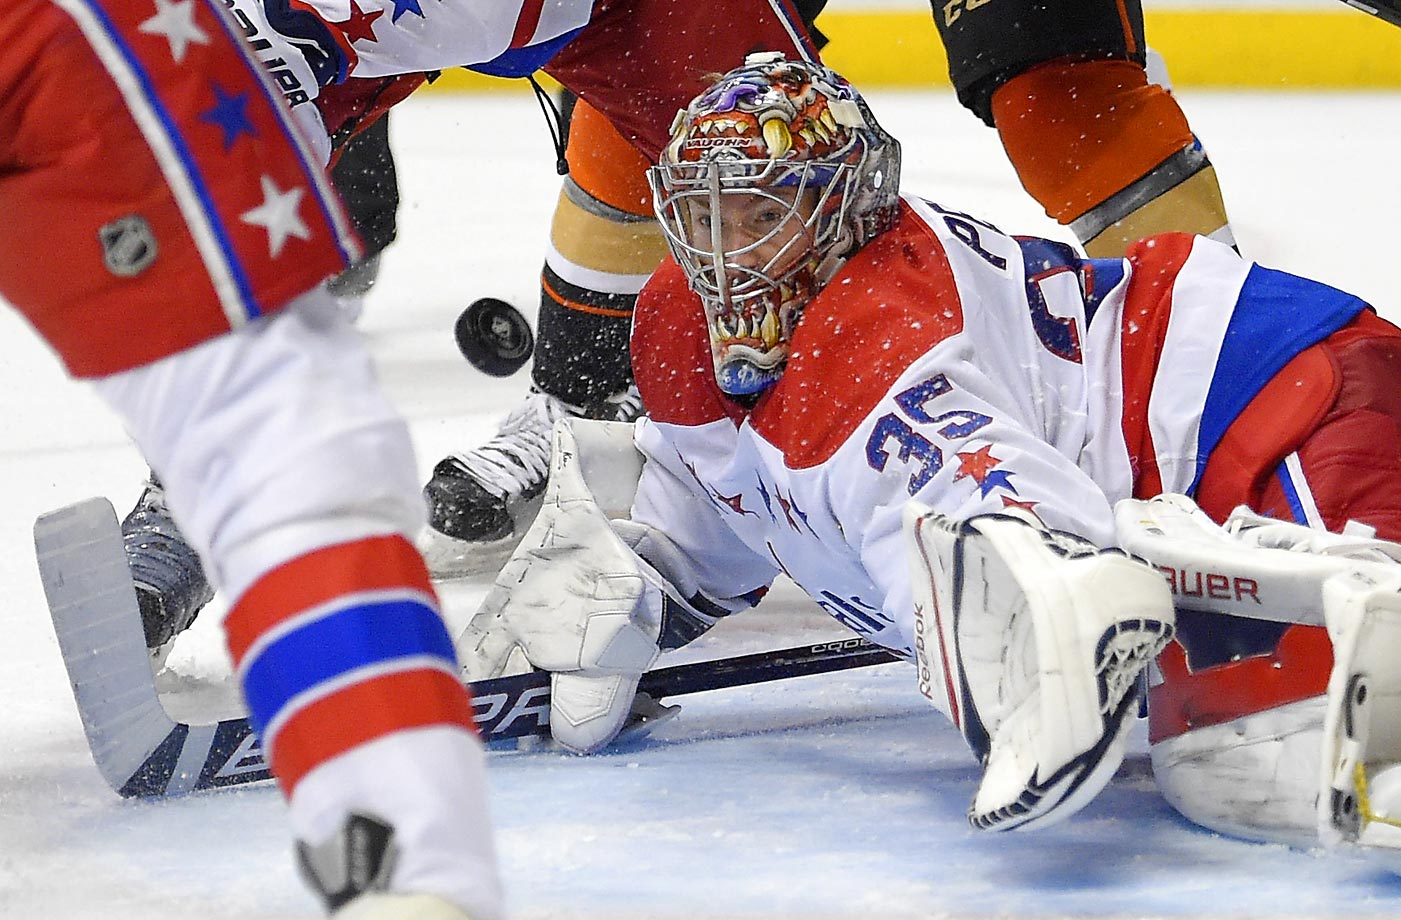 Washington Capitals goalie Justin Peters stops a shot during the second period against the Anaheim Ducks.